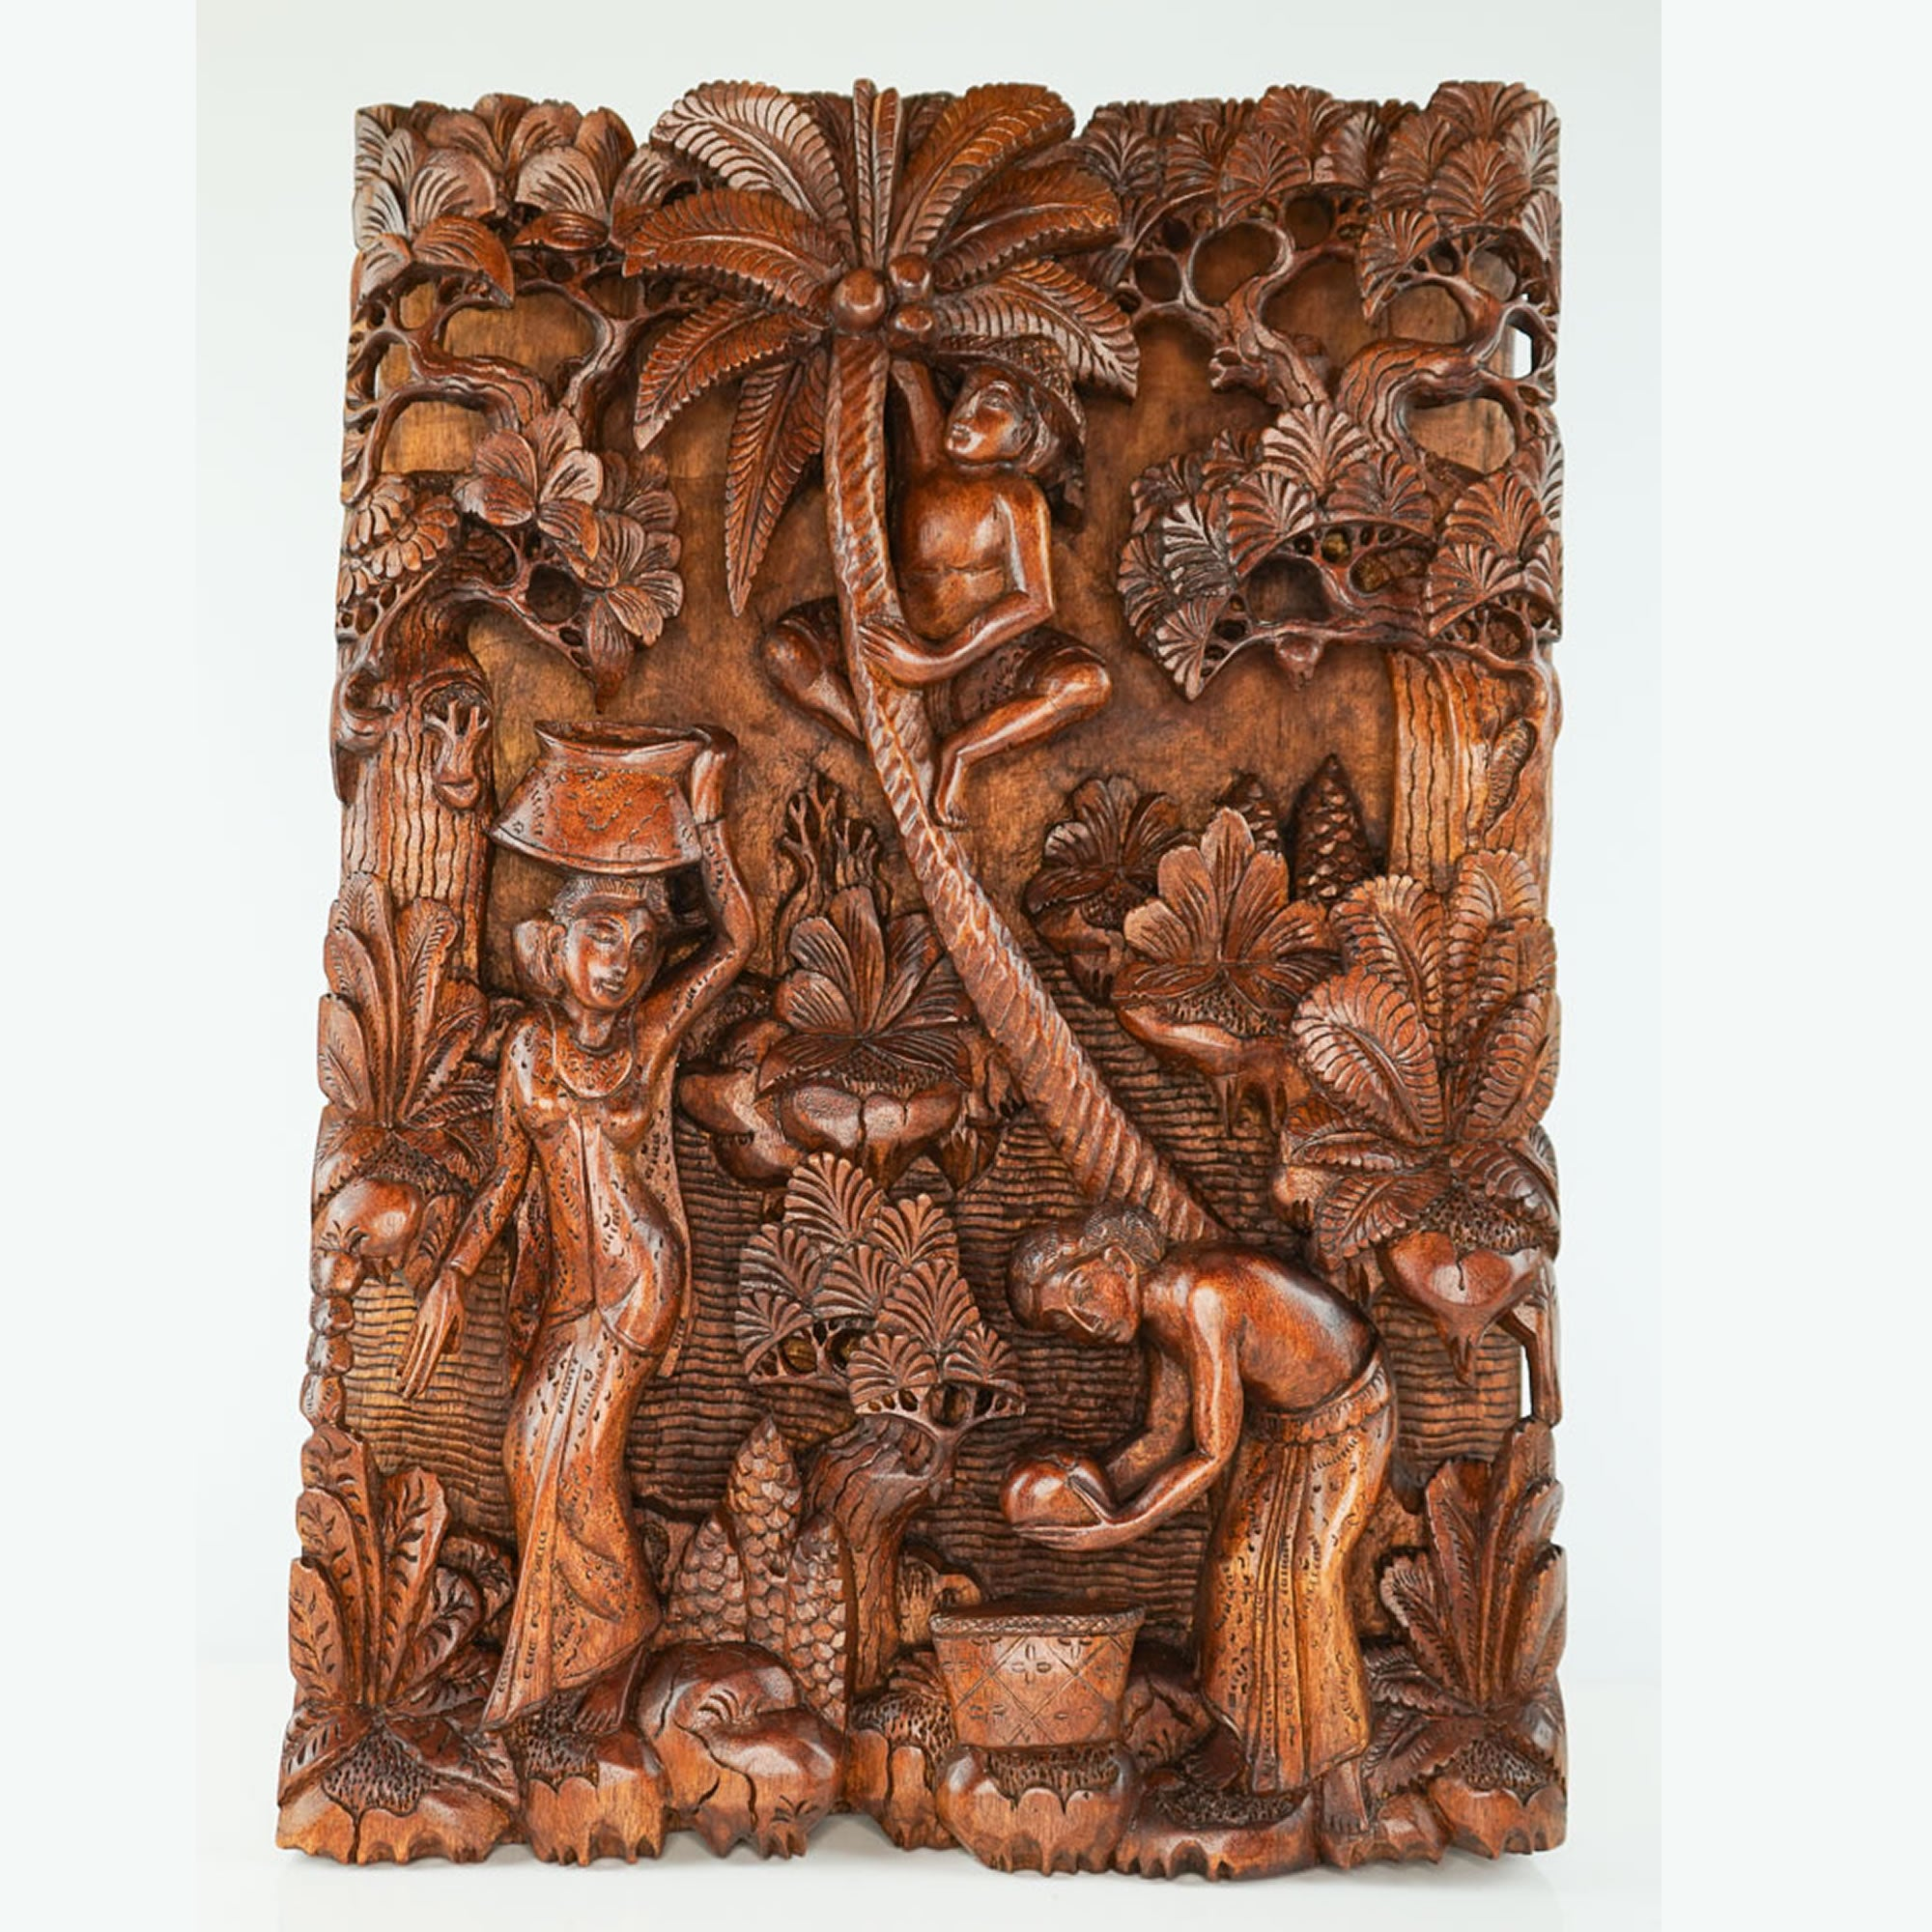 Tribal Village Carved Wooden Decorative Panel - Easternada